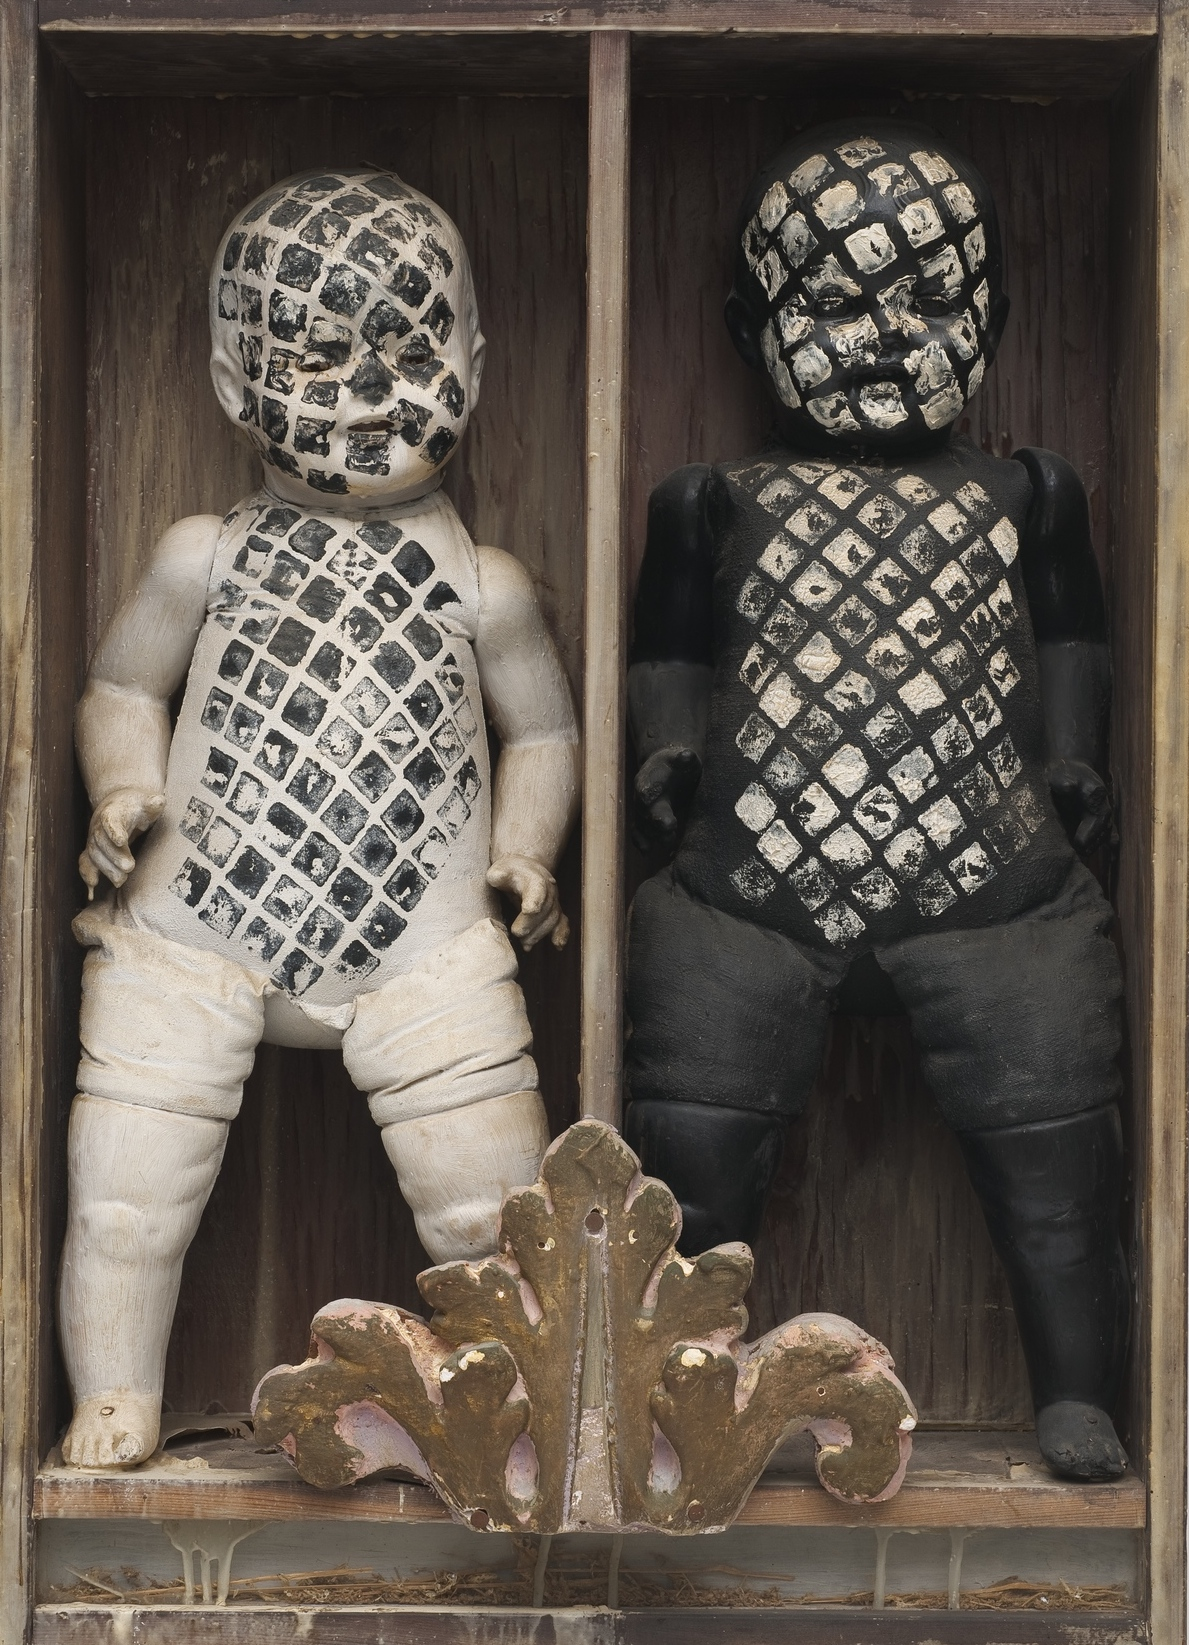 Edward Kienholz (American, 1927-1994). It Takes Two to Integrate (Cha, Cha, Cha), 1961. Painted dolls, dried fish, glass in wooden box, 31 1/4 x 22 1/2 x 7 1/2 in. (79.4 x 57.2 x 19.1 cm). Collection of David R. Packard and M. Bernadette Castor, Portola Valley, CA © Kienholz. Photo: Courtesy of L.A. Louver, Venice, California  Witness: Art and Civil Rights in the Sixties is organized by the Brooklyn Museum